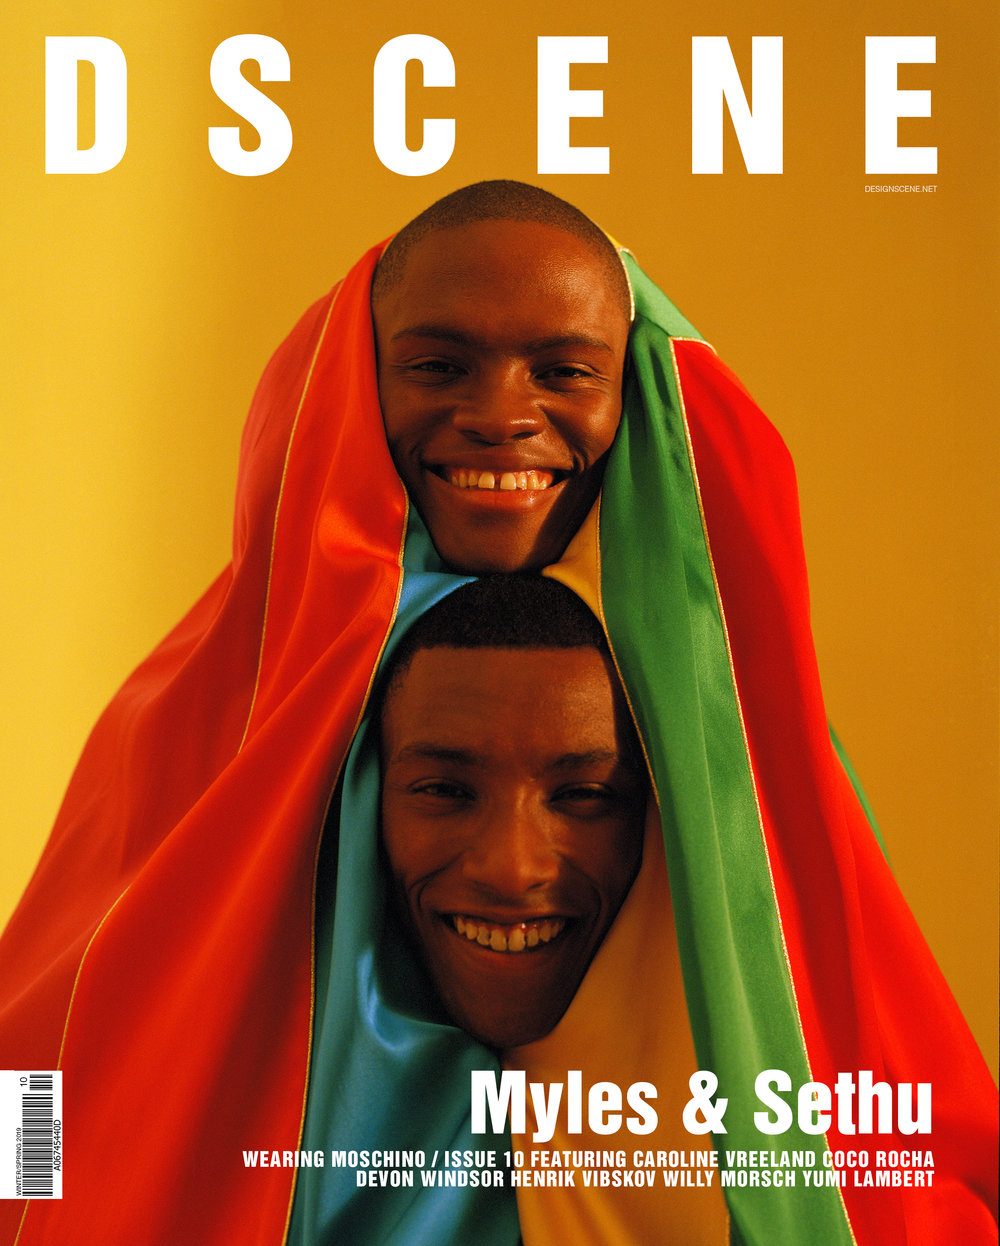 D'SCENE - ISSUE 10 - SS19 - LONDON, DECEMBER 2018